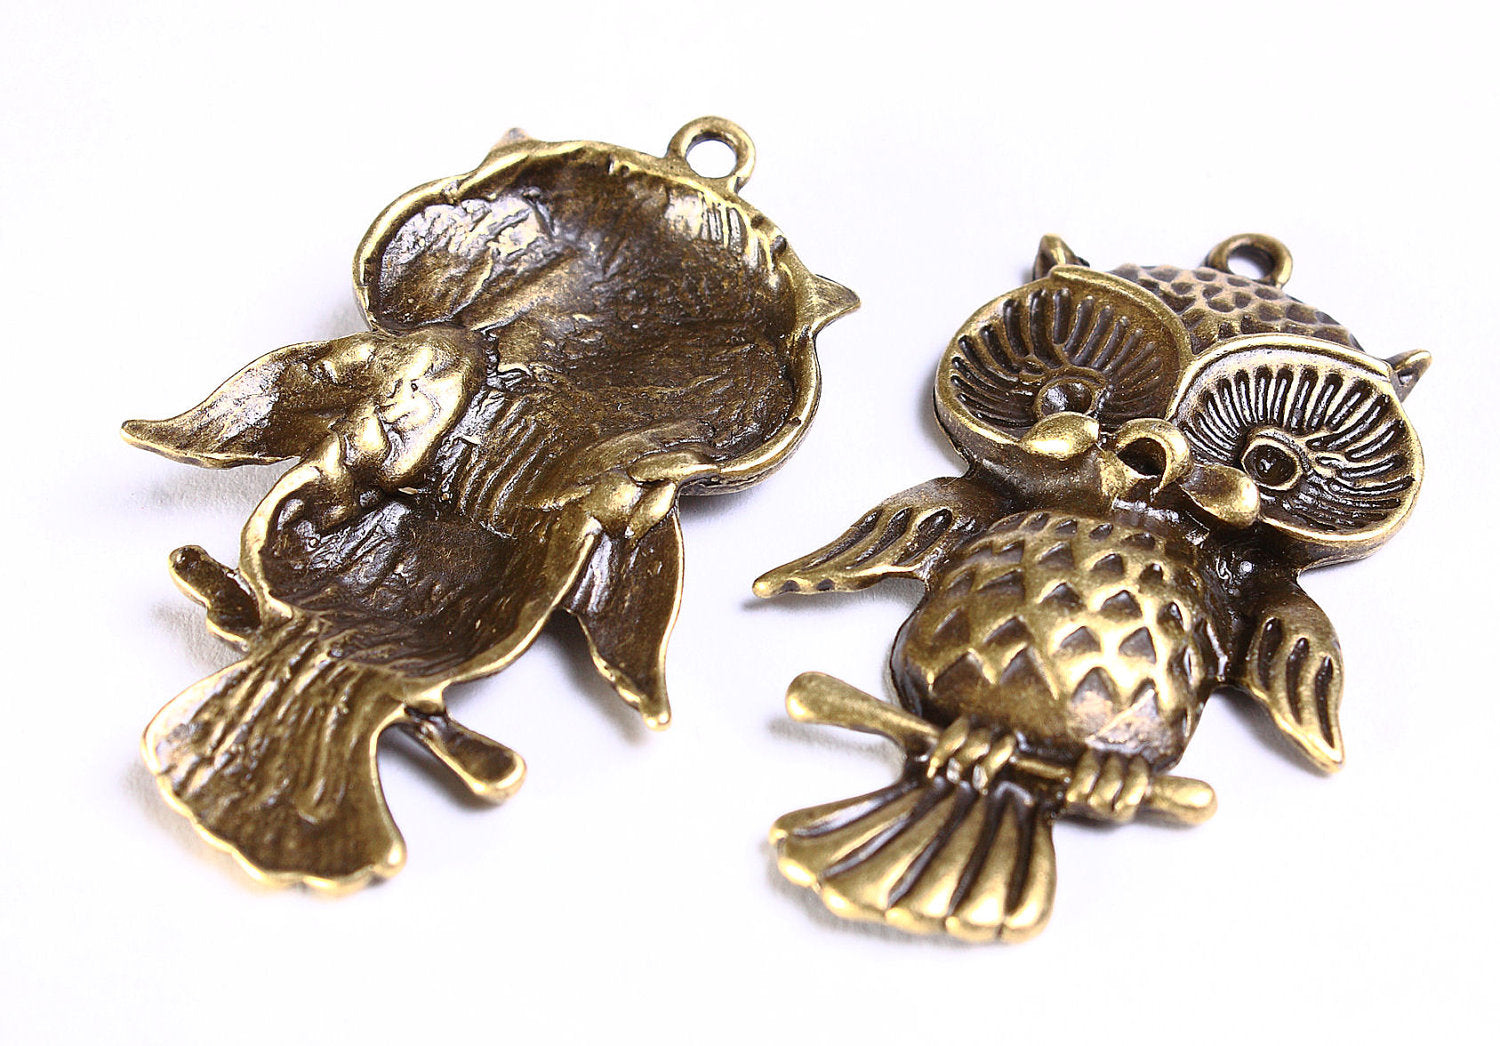 43mm x 27mm Owl pendant - bird charm - antique brass pendant - metal owl pendant - nickel free lead free - 1 piece (550)